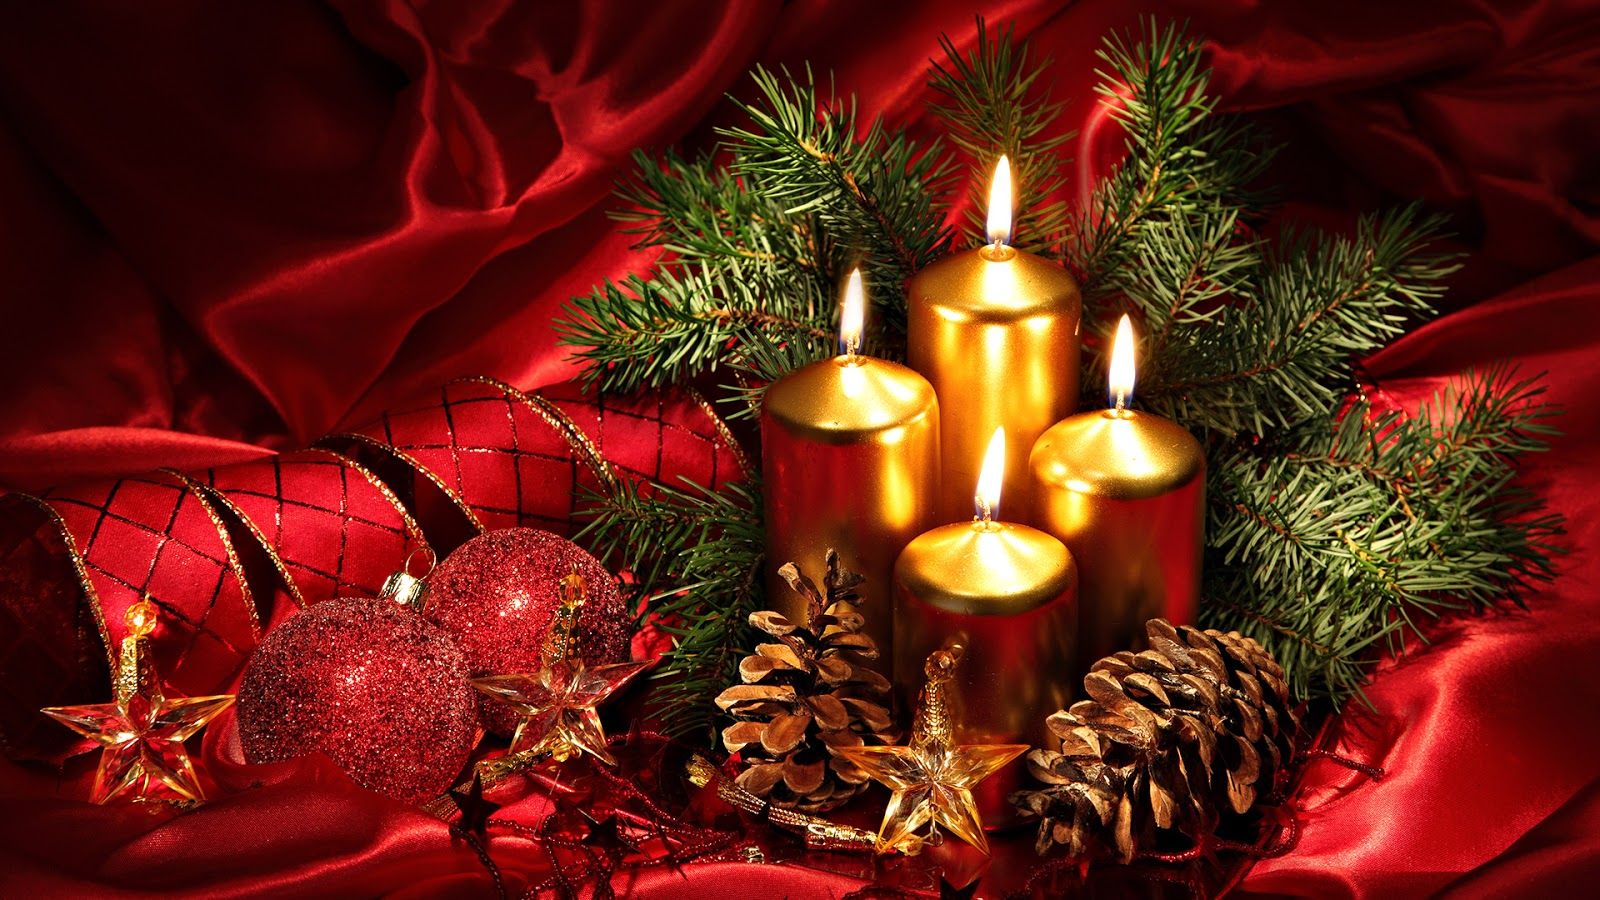 Xmas wallpaper, Merry christmas images